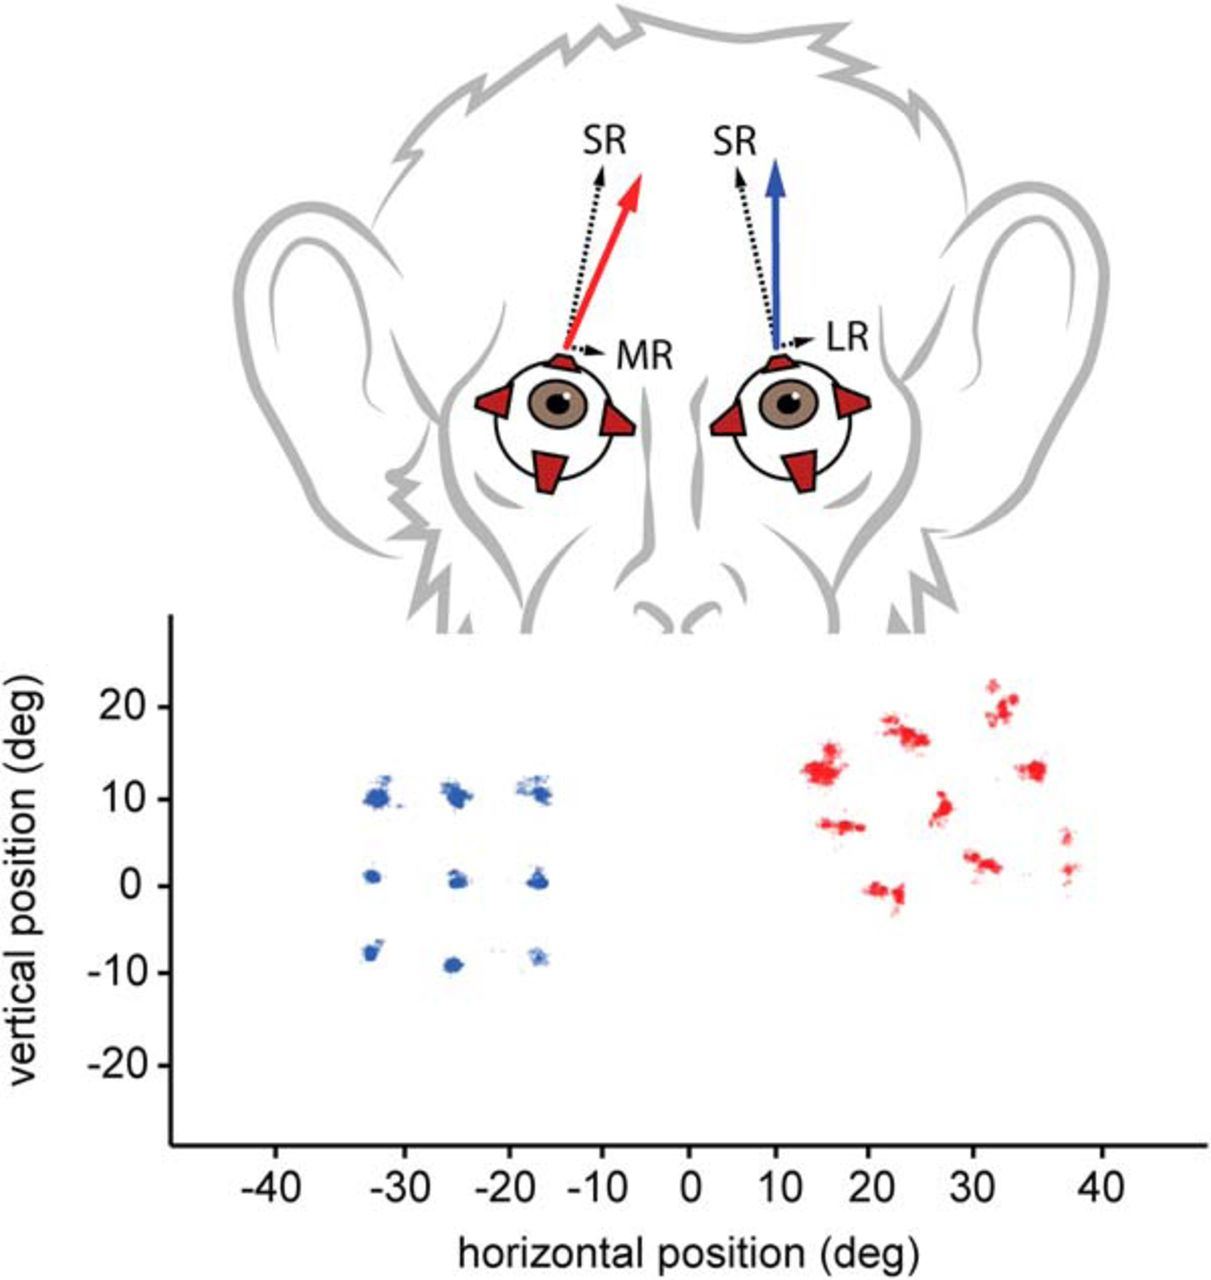 Normal Topography and Binocularity of the Superior Colliculus in